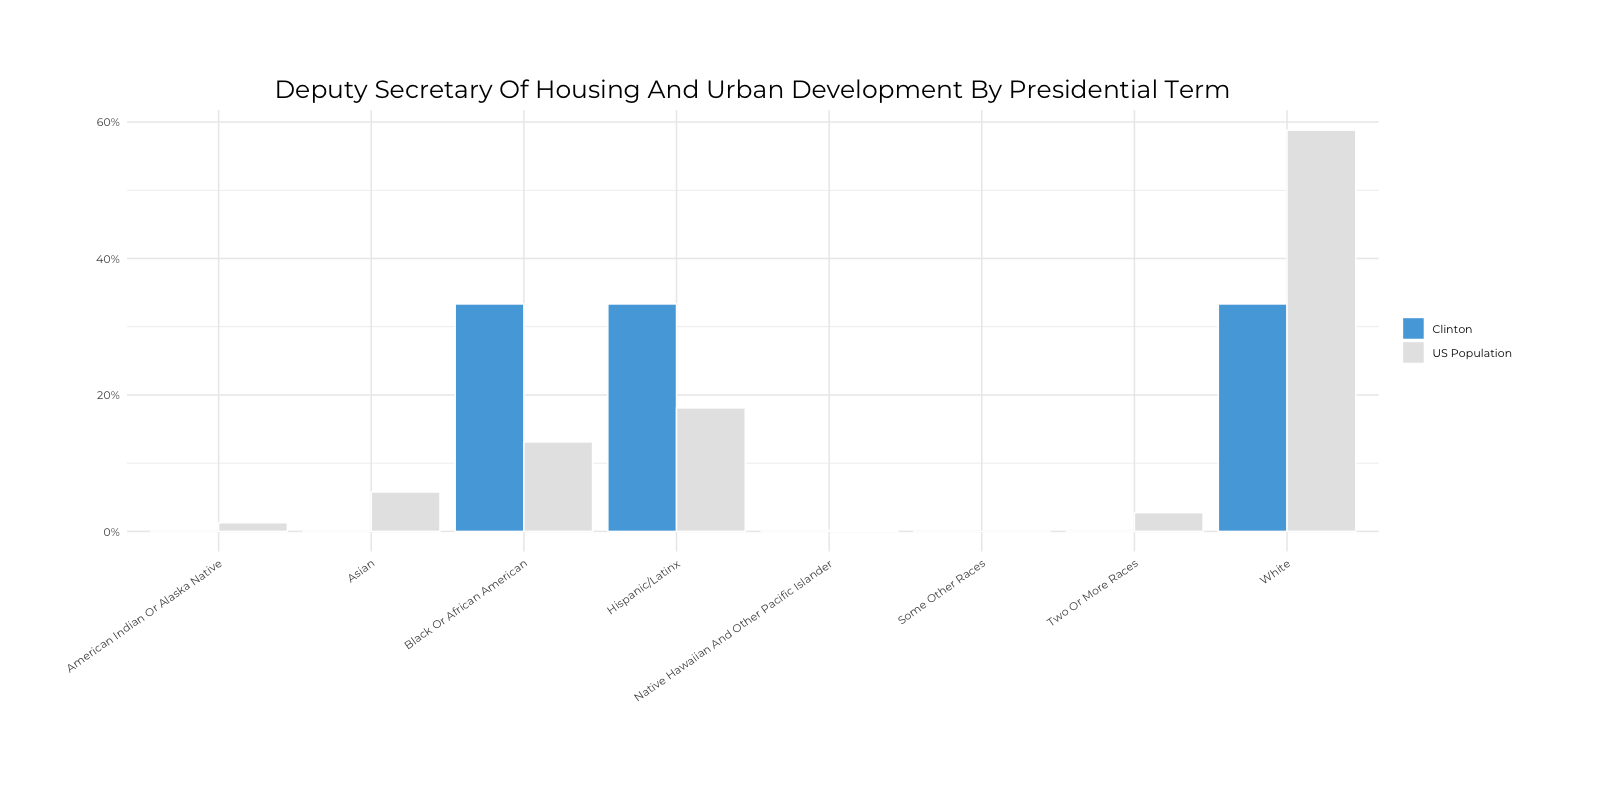 Graph about Racial Composition Comparison of Deputy Secretary of Housing and Urban Development by Presidential Terms. More detailed text description below.